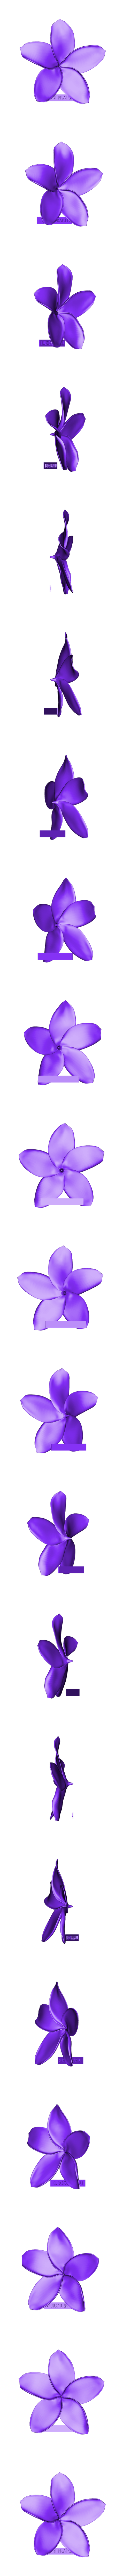 euroreprap_flower-plumeria_a.stl Download STL file flowers: Plumeria - 3D printable model • 3D printable template, euroreprap_eu